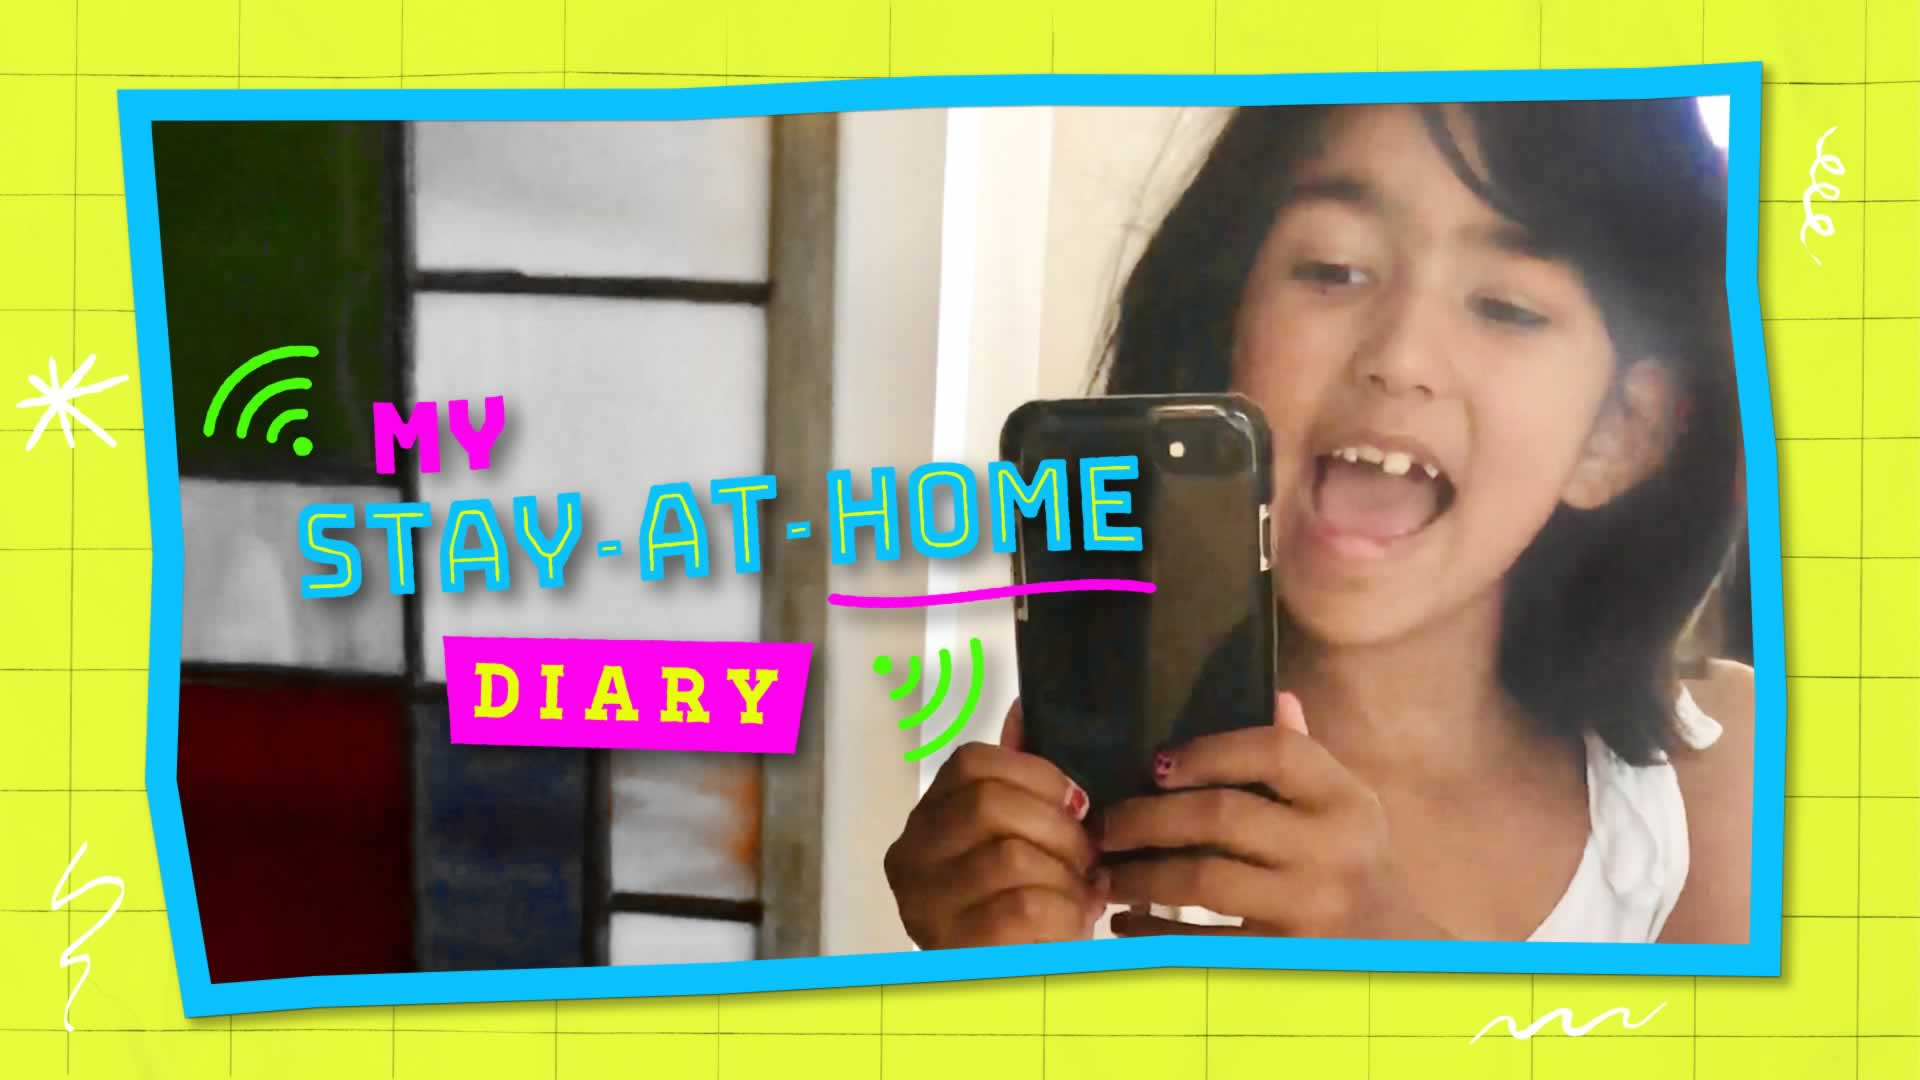 My Stay at Home Diary Promo